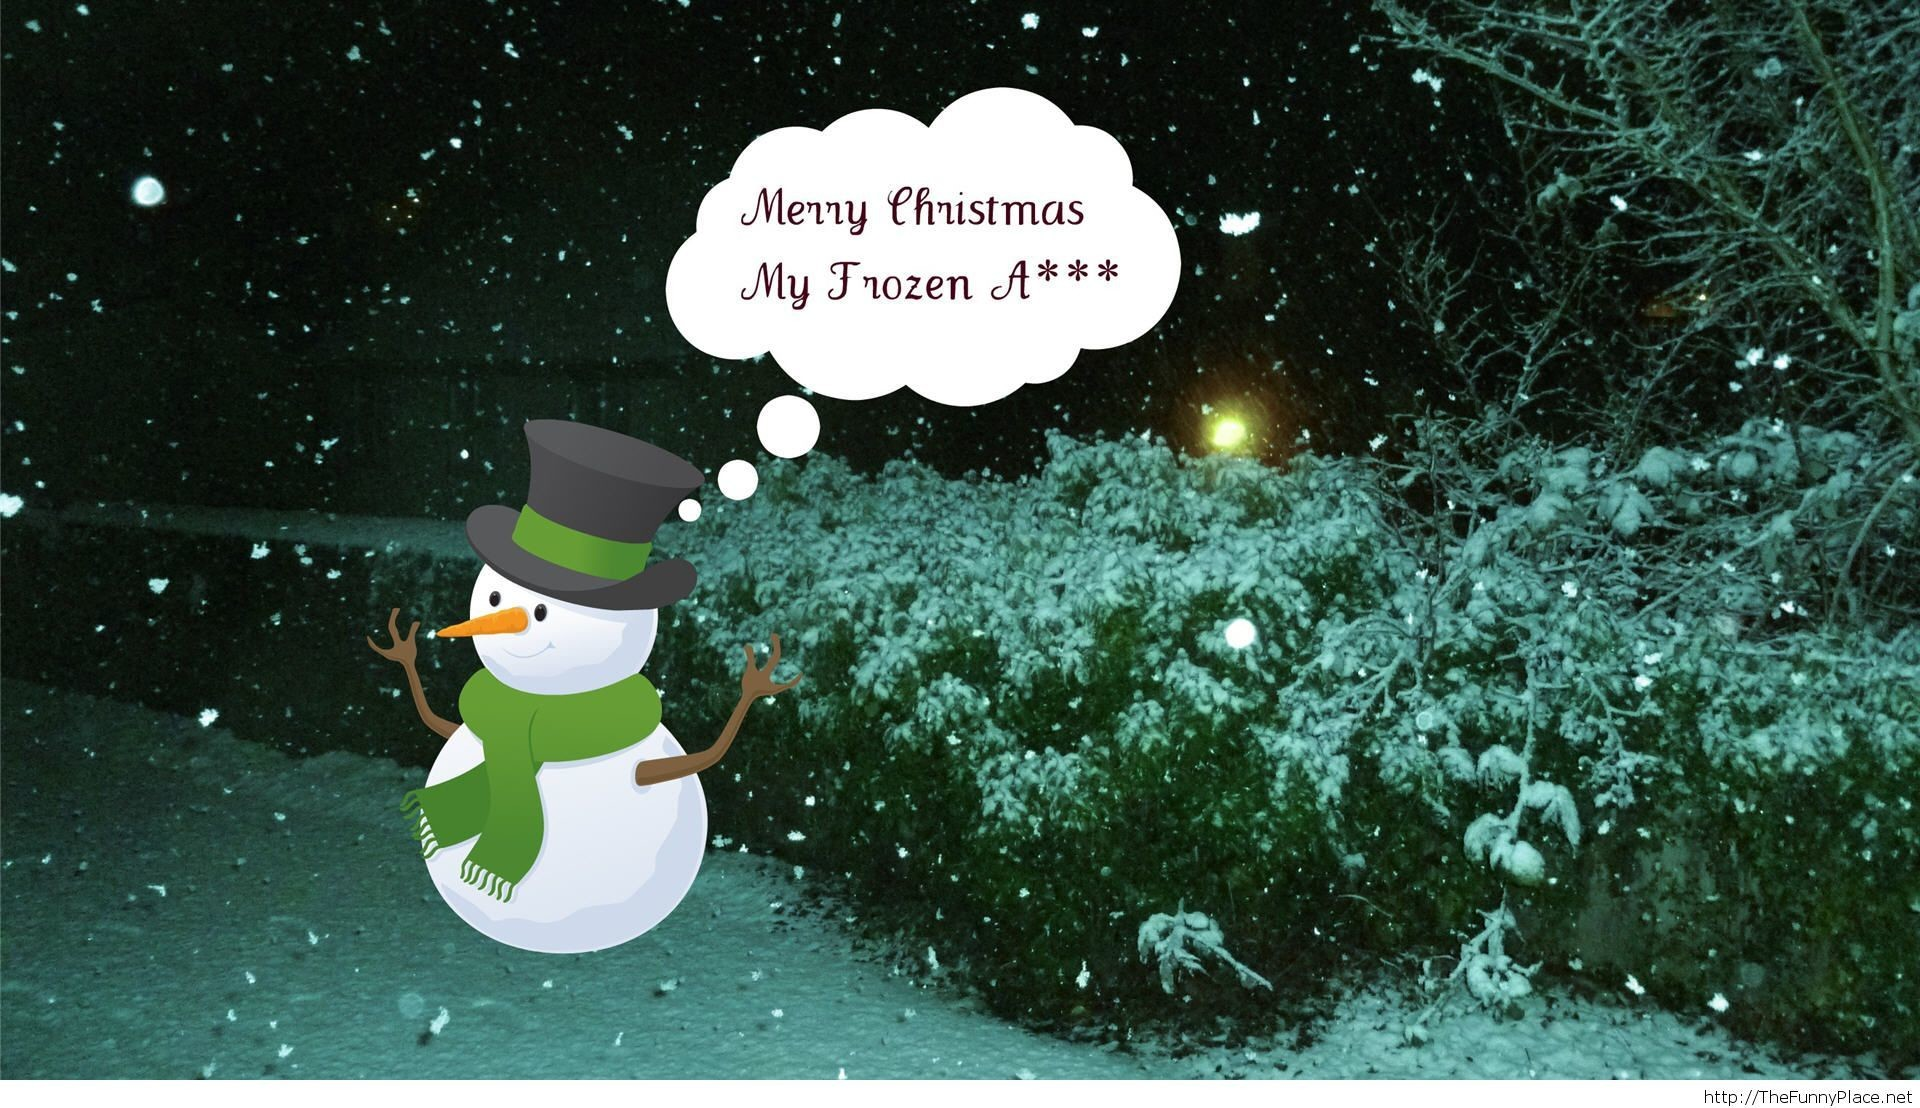 Res: 1920x1108, Merry christmas funny wallpaper